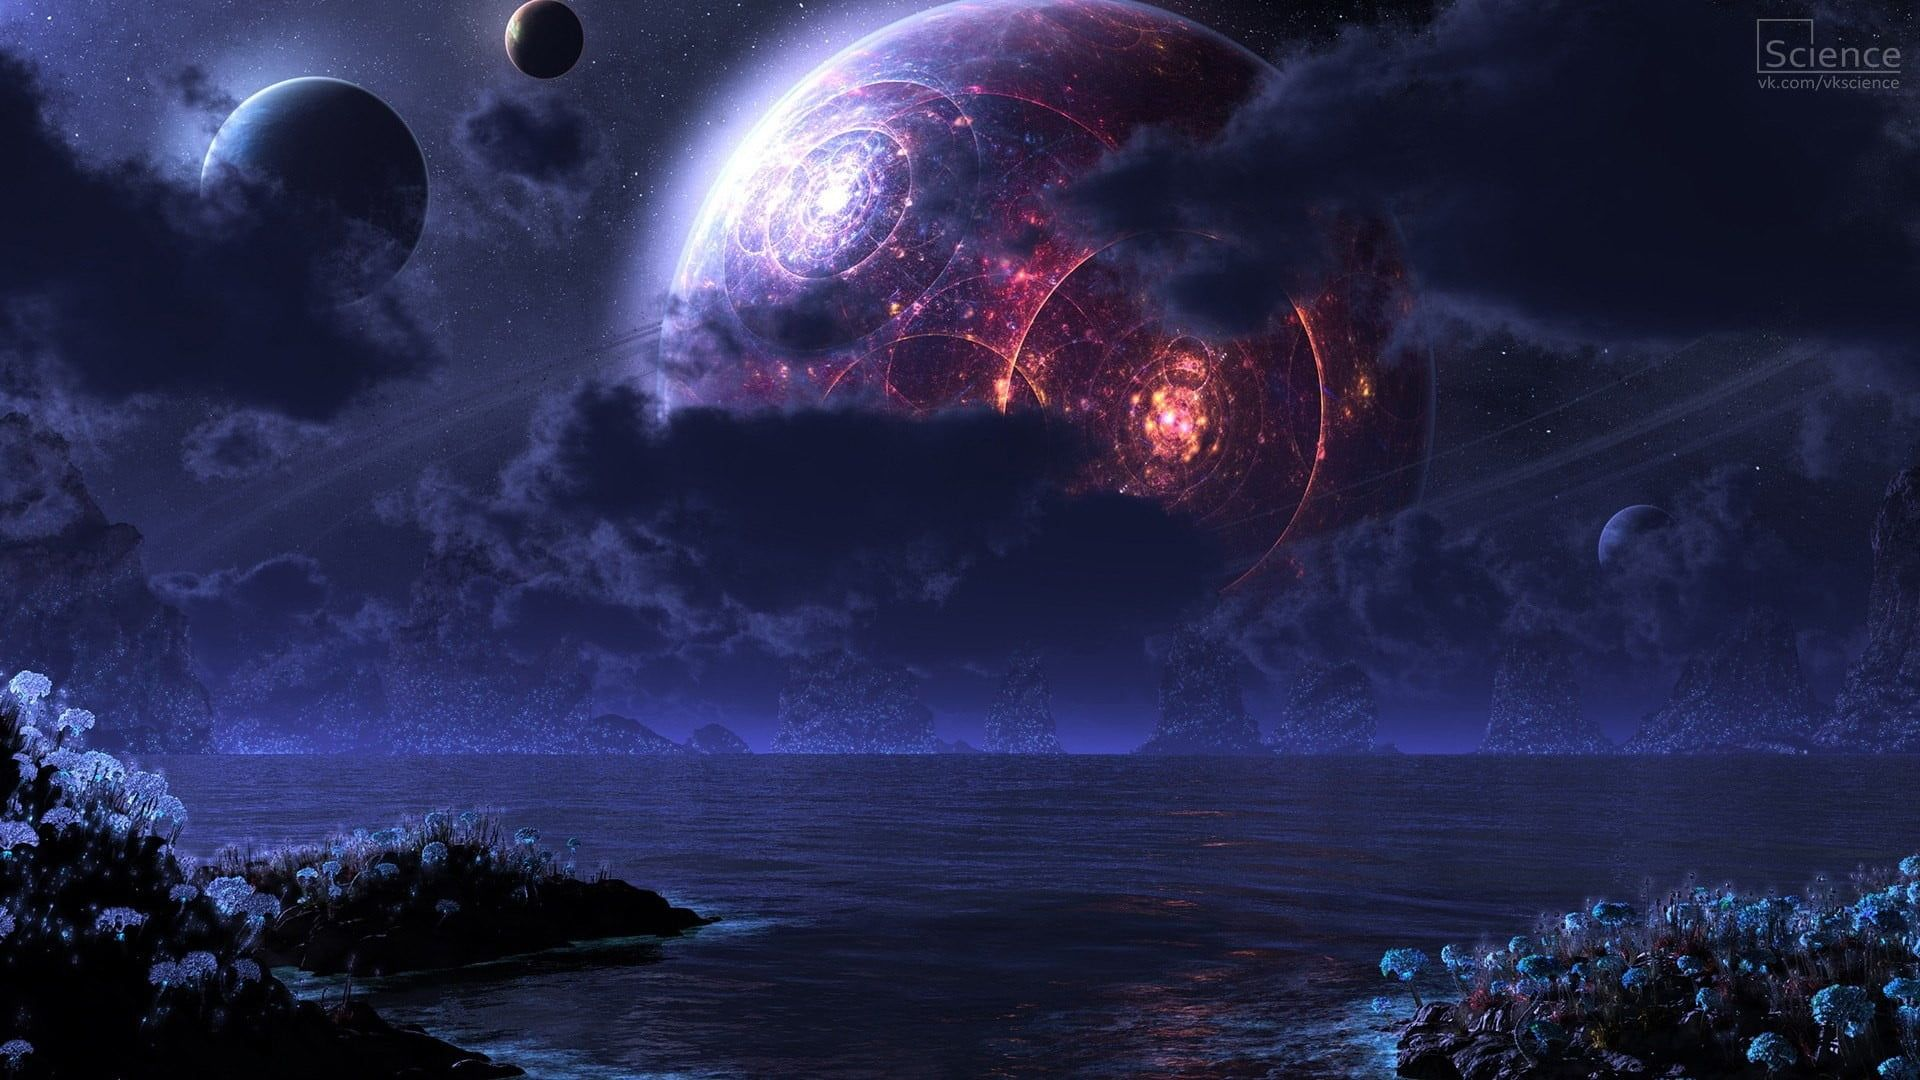 Red Planet And Ocean Painting Space Futuristic Galaxy Space Art Planet Science Fiction Digital Art 10 In 2020 Scenery Wallpaper Planets Wallpaper Sci Fi Wallpaper